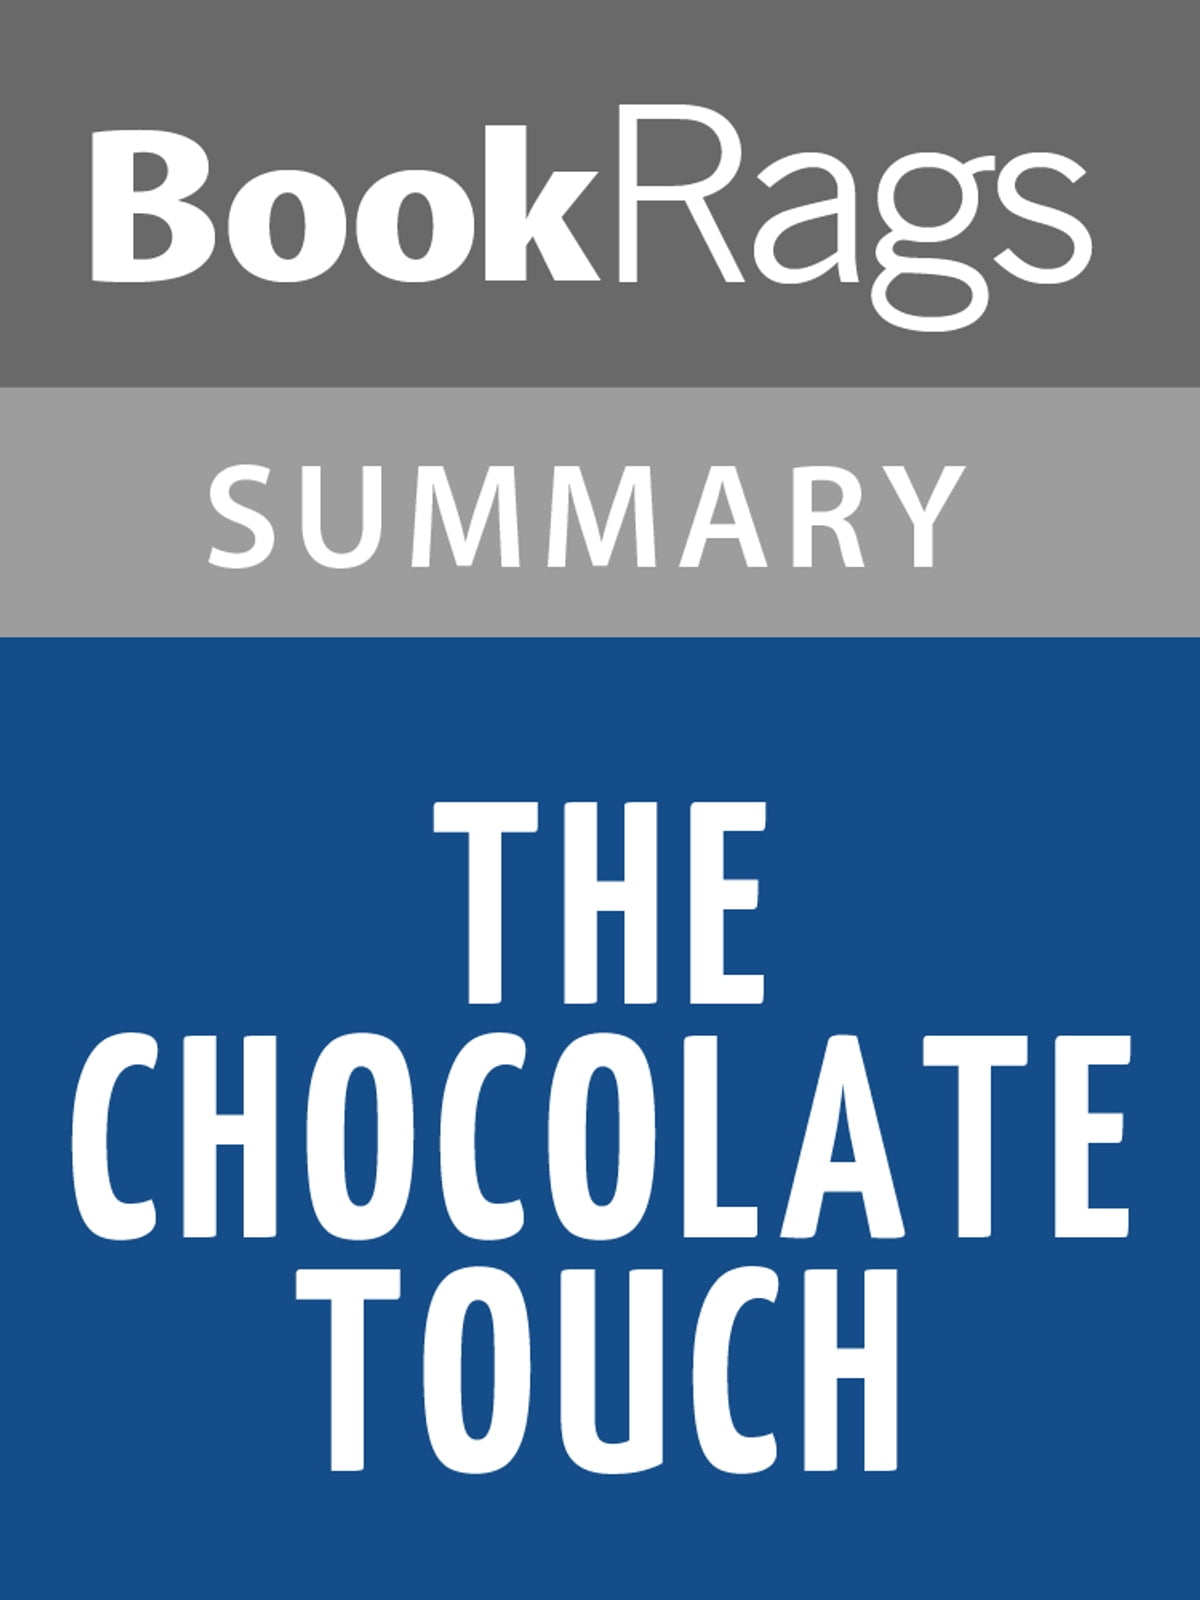 The Chocolate Touch by Patrick Skene Catling l Summary & Study Guide eBook  by BookRags - 1230000331968 | Rakuten Kobo